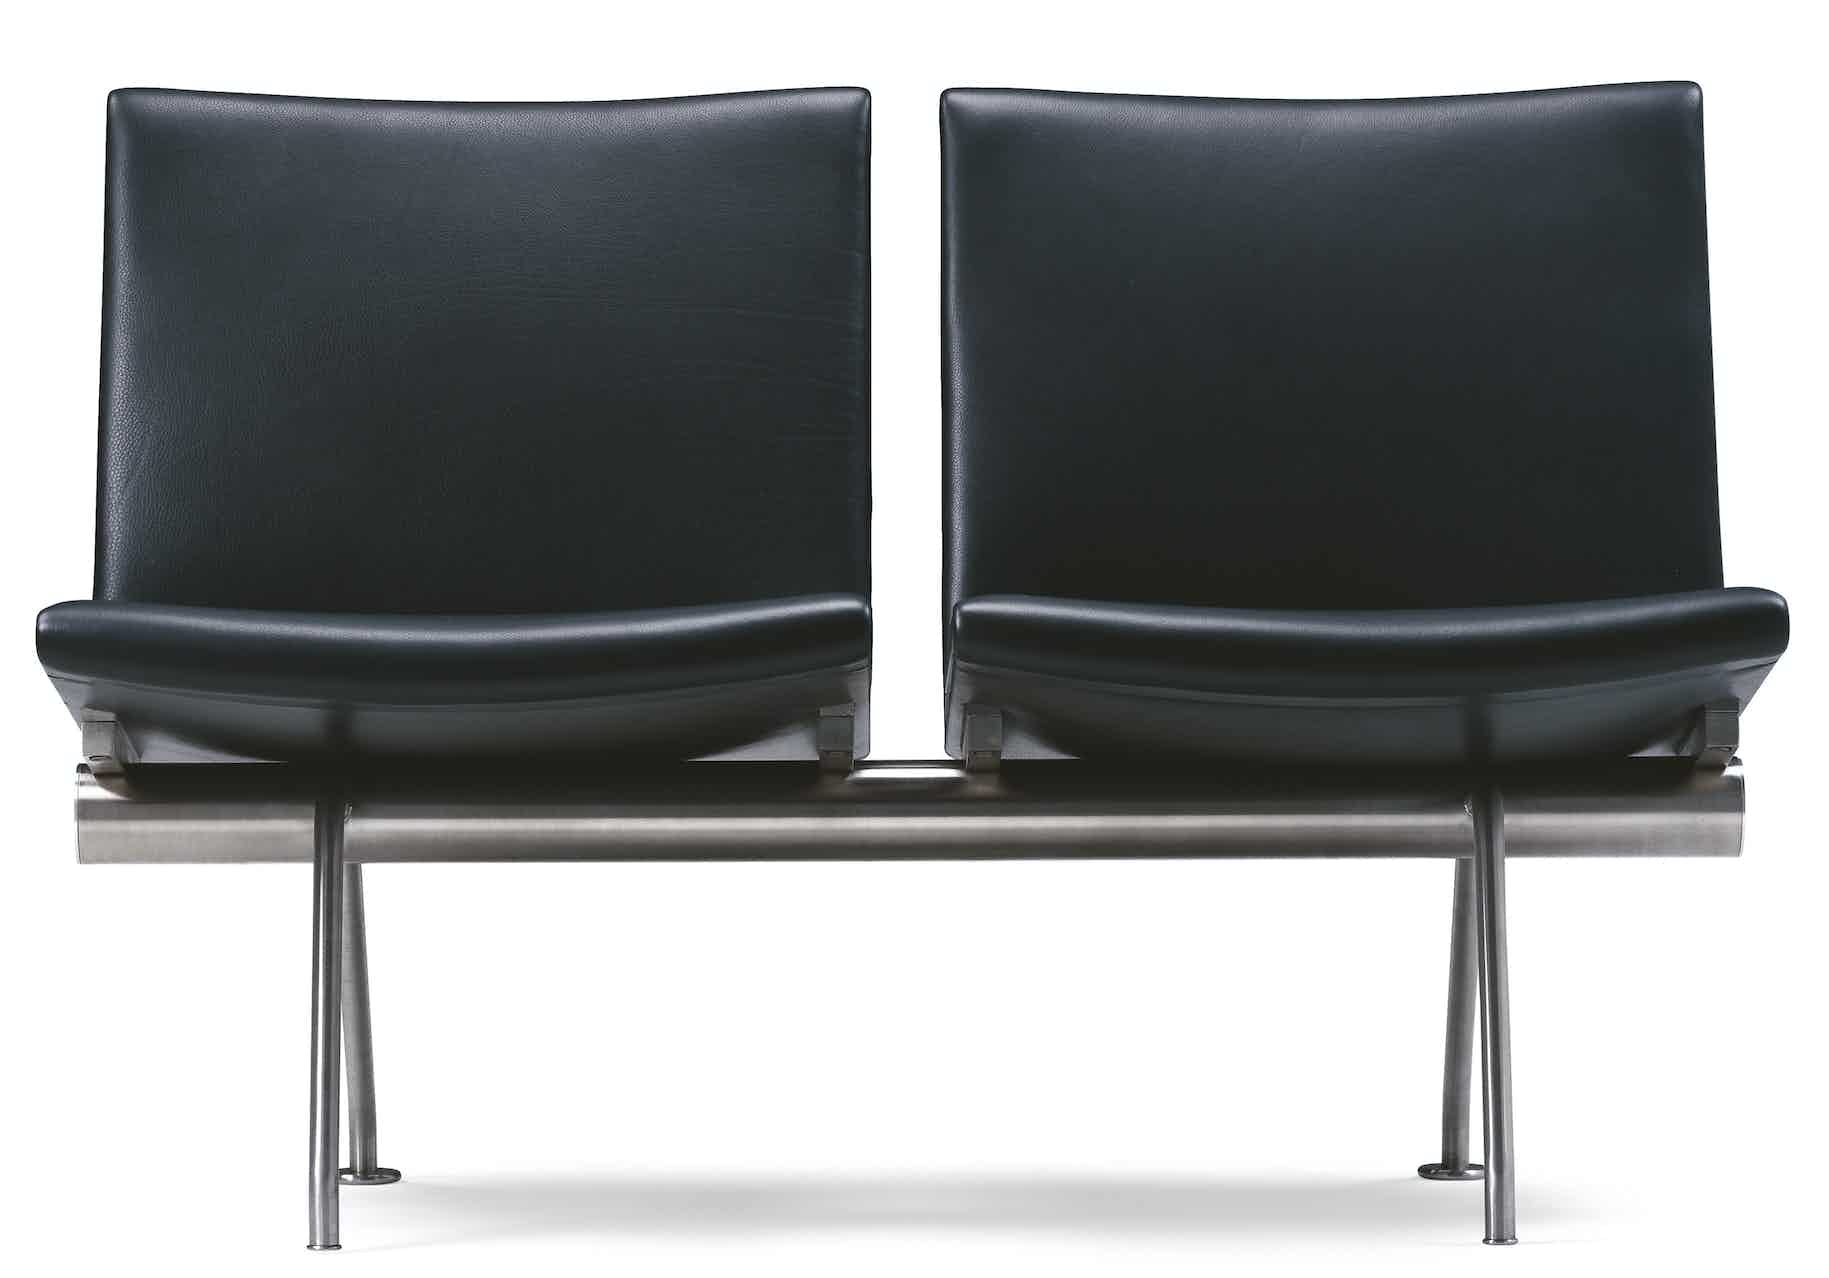 Carl-hansen-son-dark-ch402-haute-living